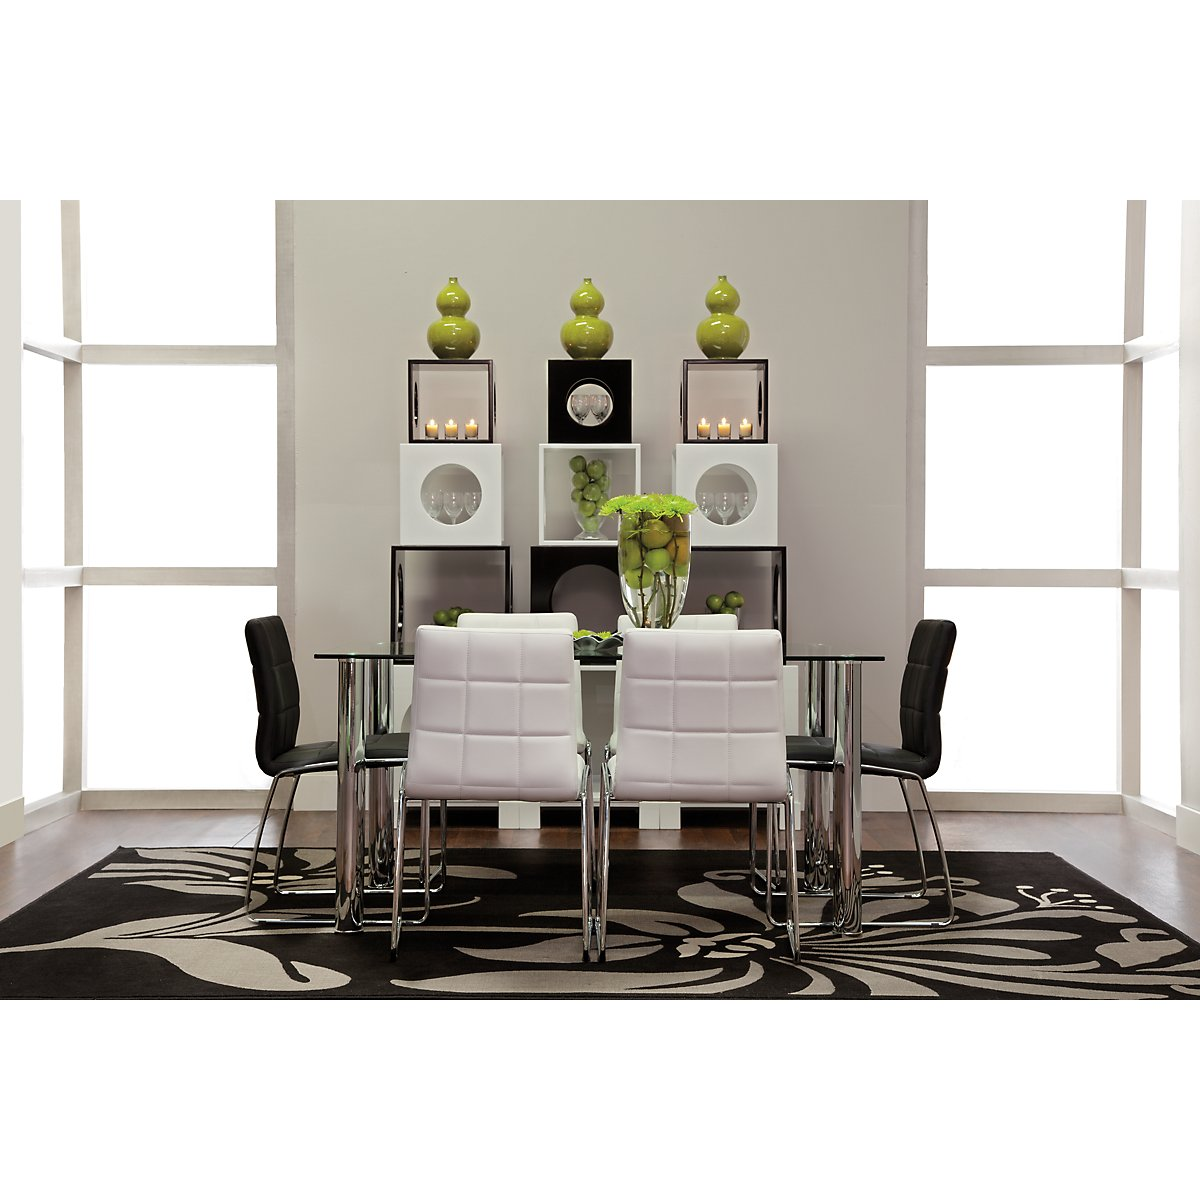 Napoli Black Rect Table & 4 Upholstered Chairs